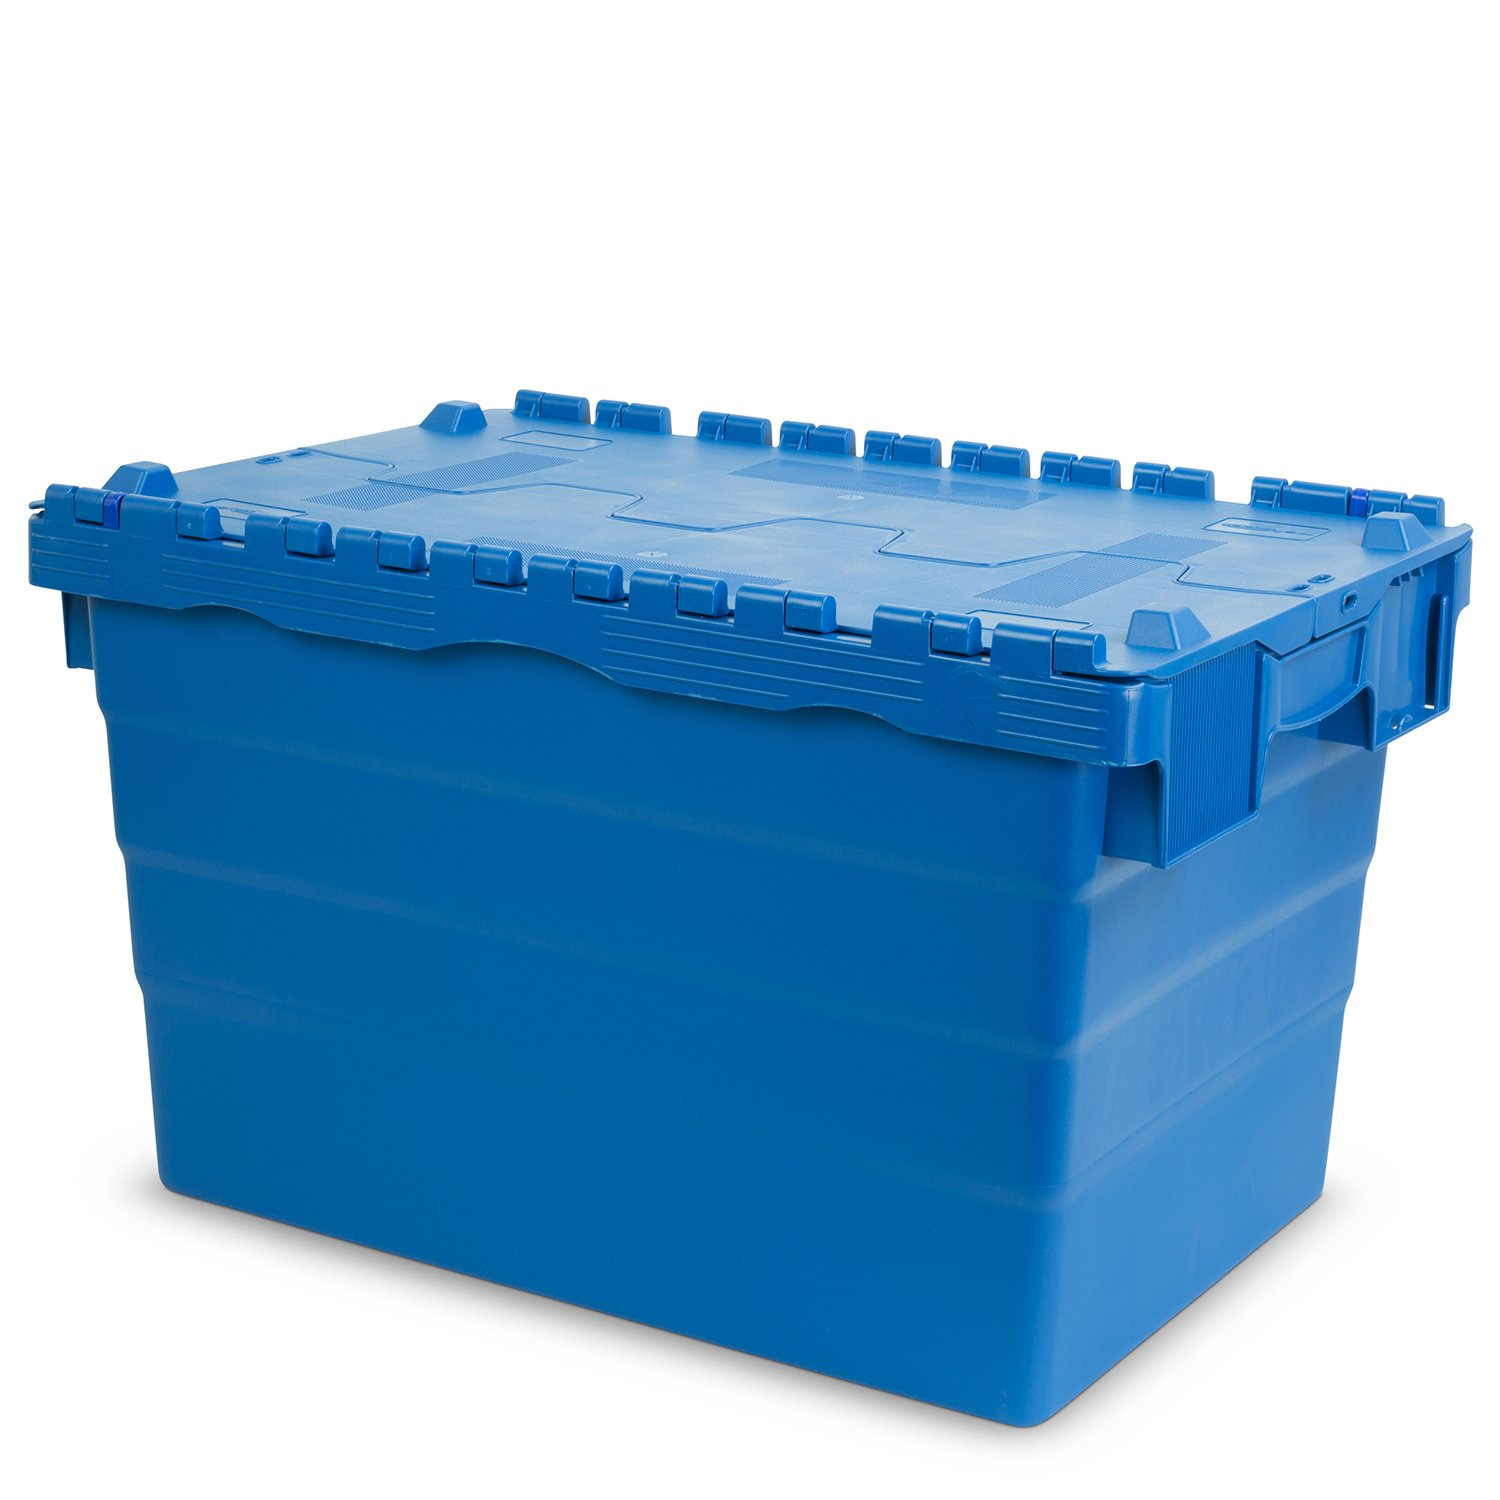 Hans Schourup 22600461  Reusable Container with Hinged Lid, 600  mm x 400  mm x 365  mm, blue 600 mm x 400 mm x 365 mm